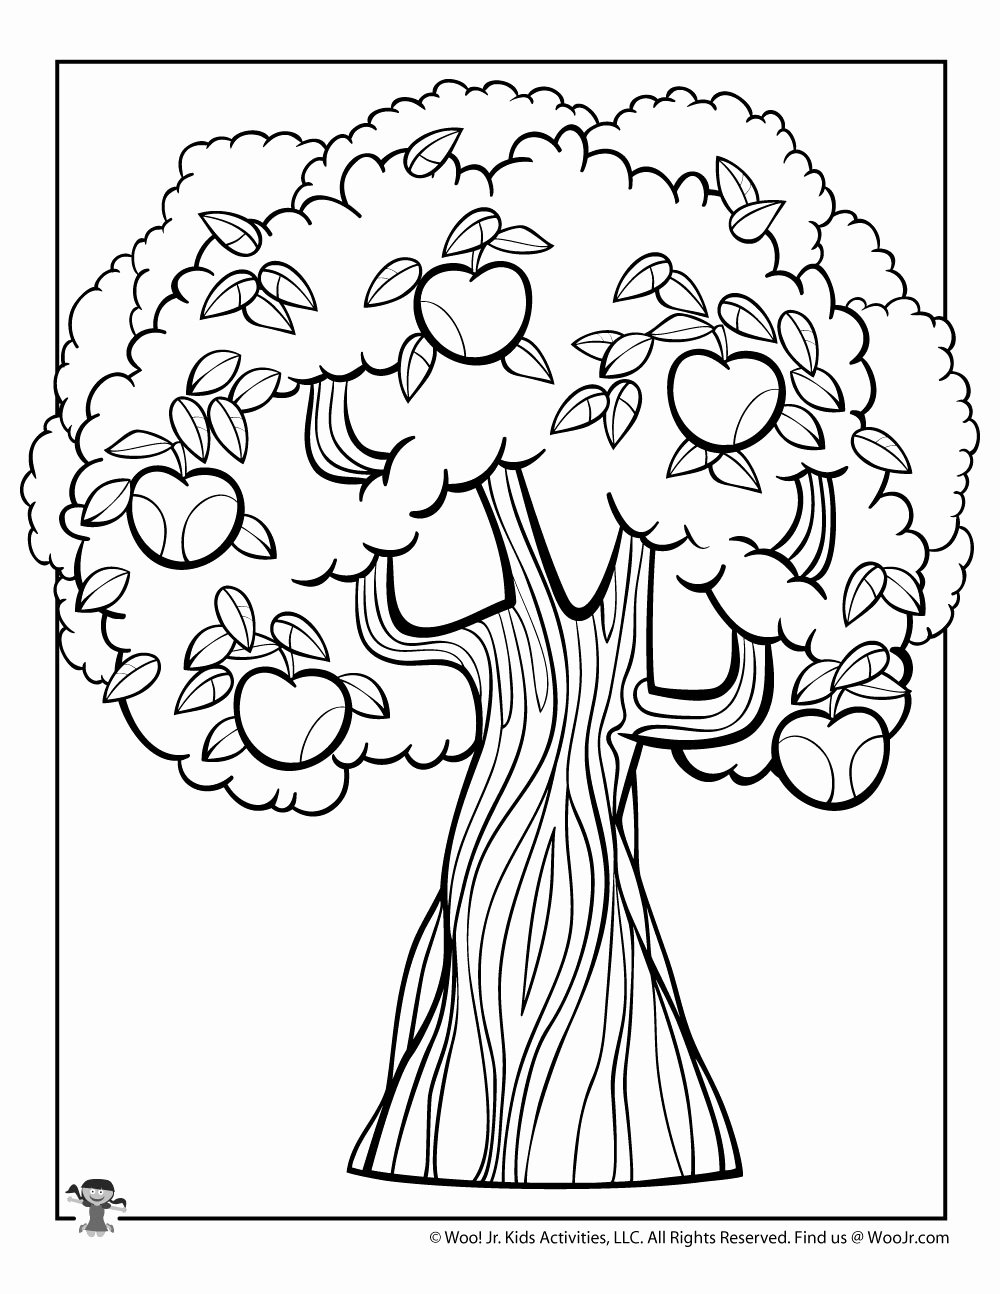 Tree Coloring Worksheets for Preschoolers New Apple Tree Coloring Woo Jr Kids Activities Picking Math